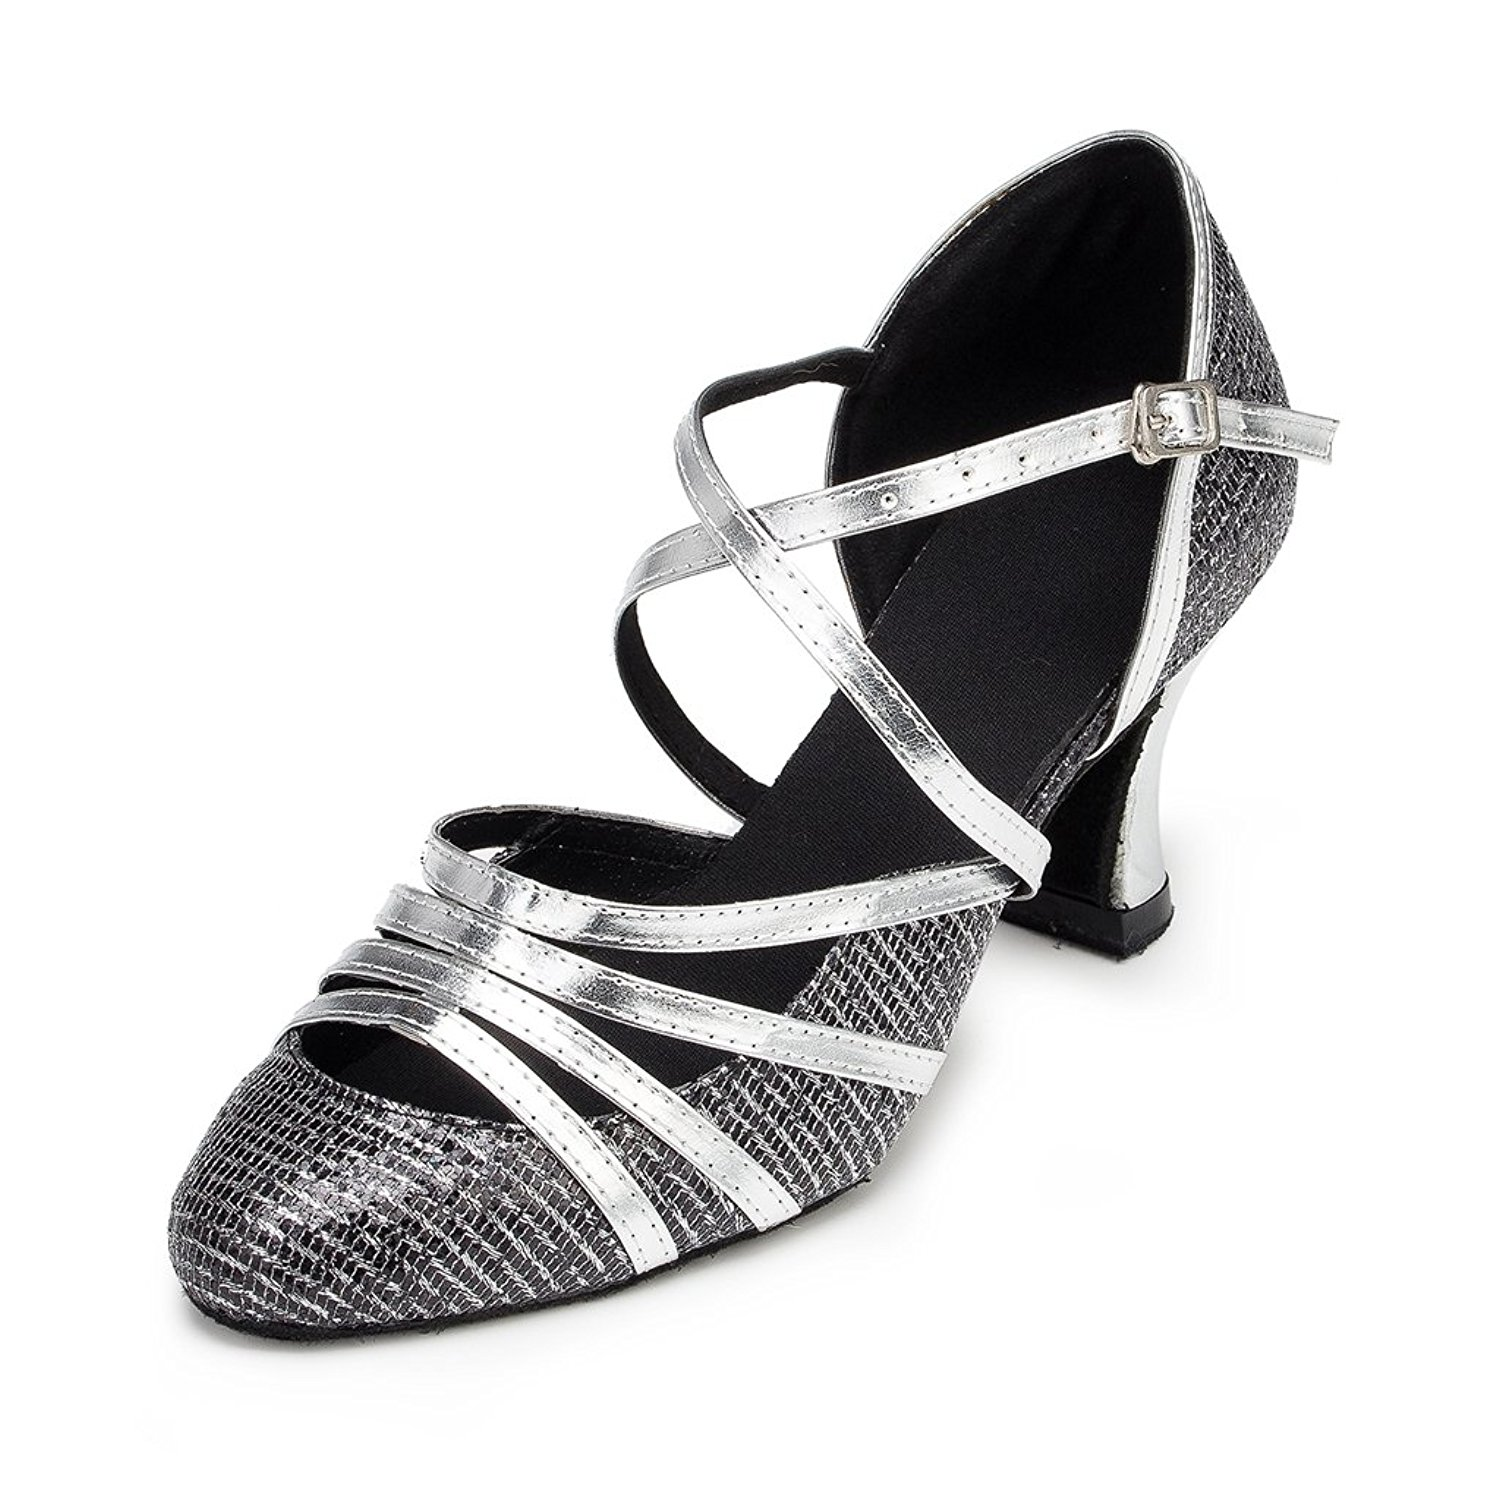 CRC Women's Stylish Round Toe Sparkle Material Synthetic Ballroom Morden Tango Party Wedding Professional Dance Shoes